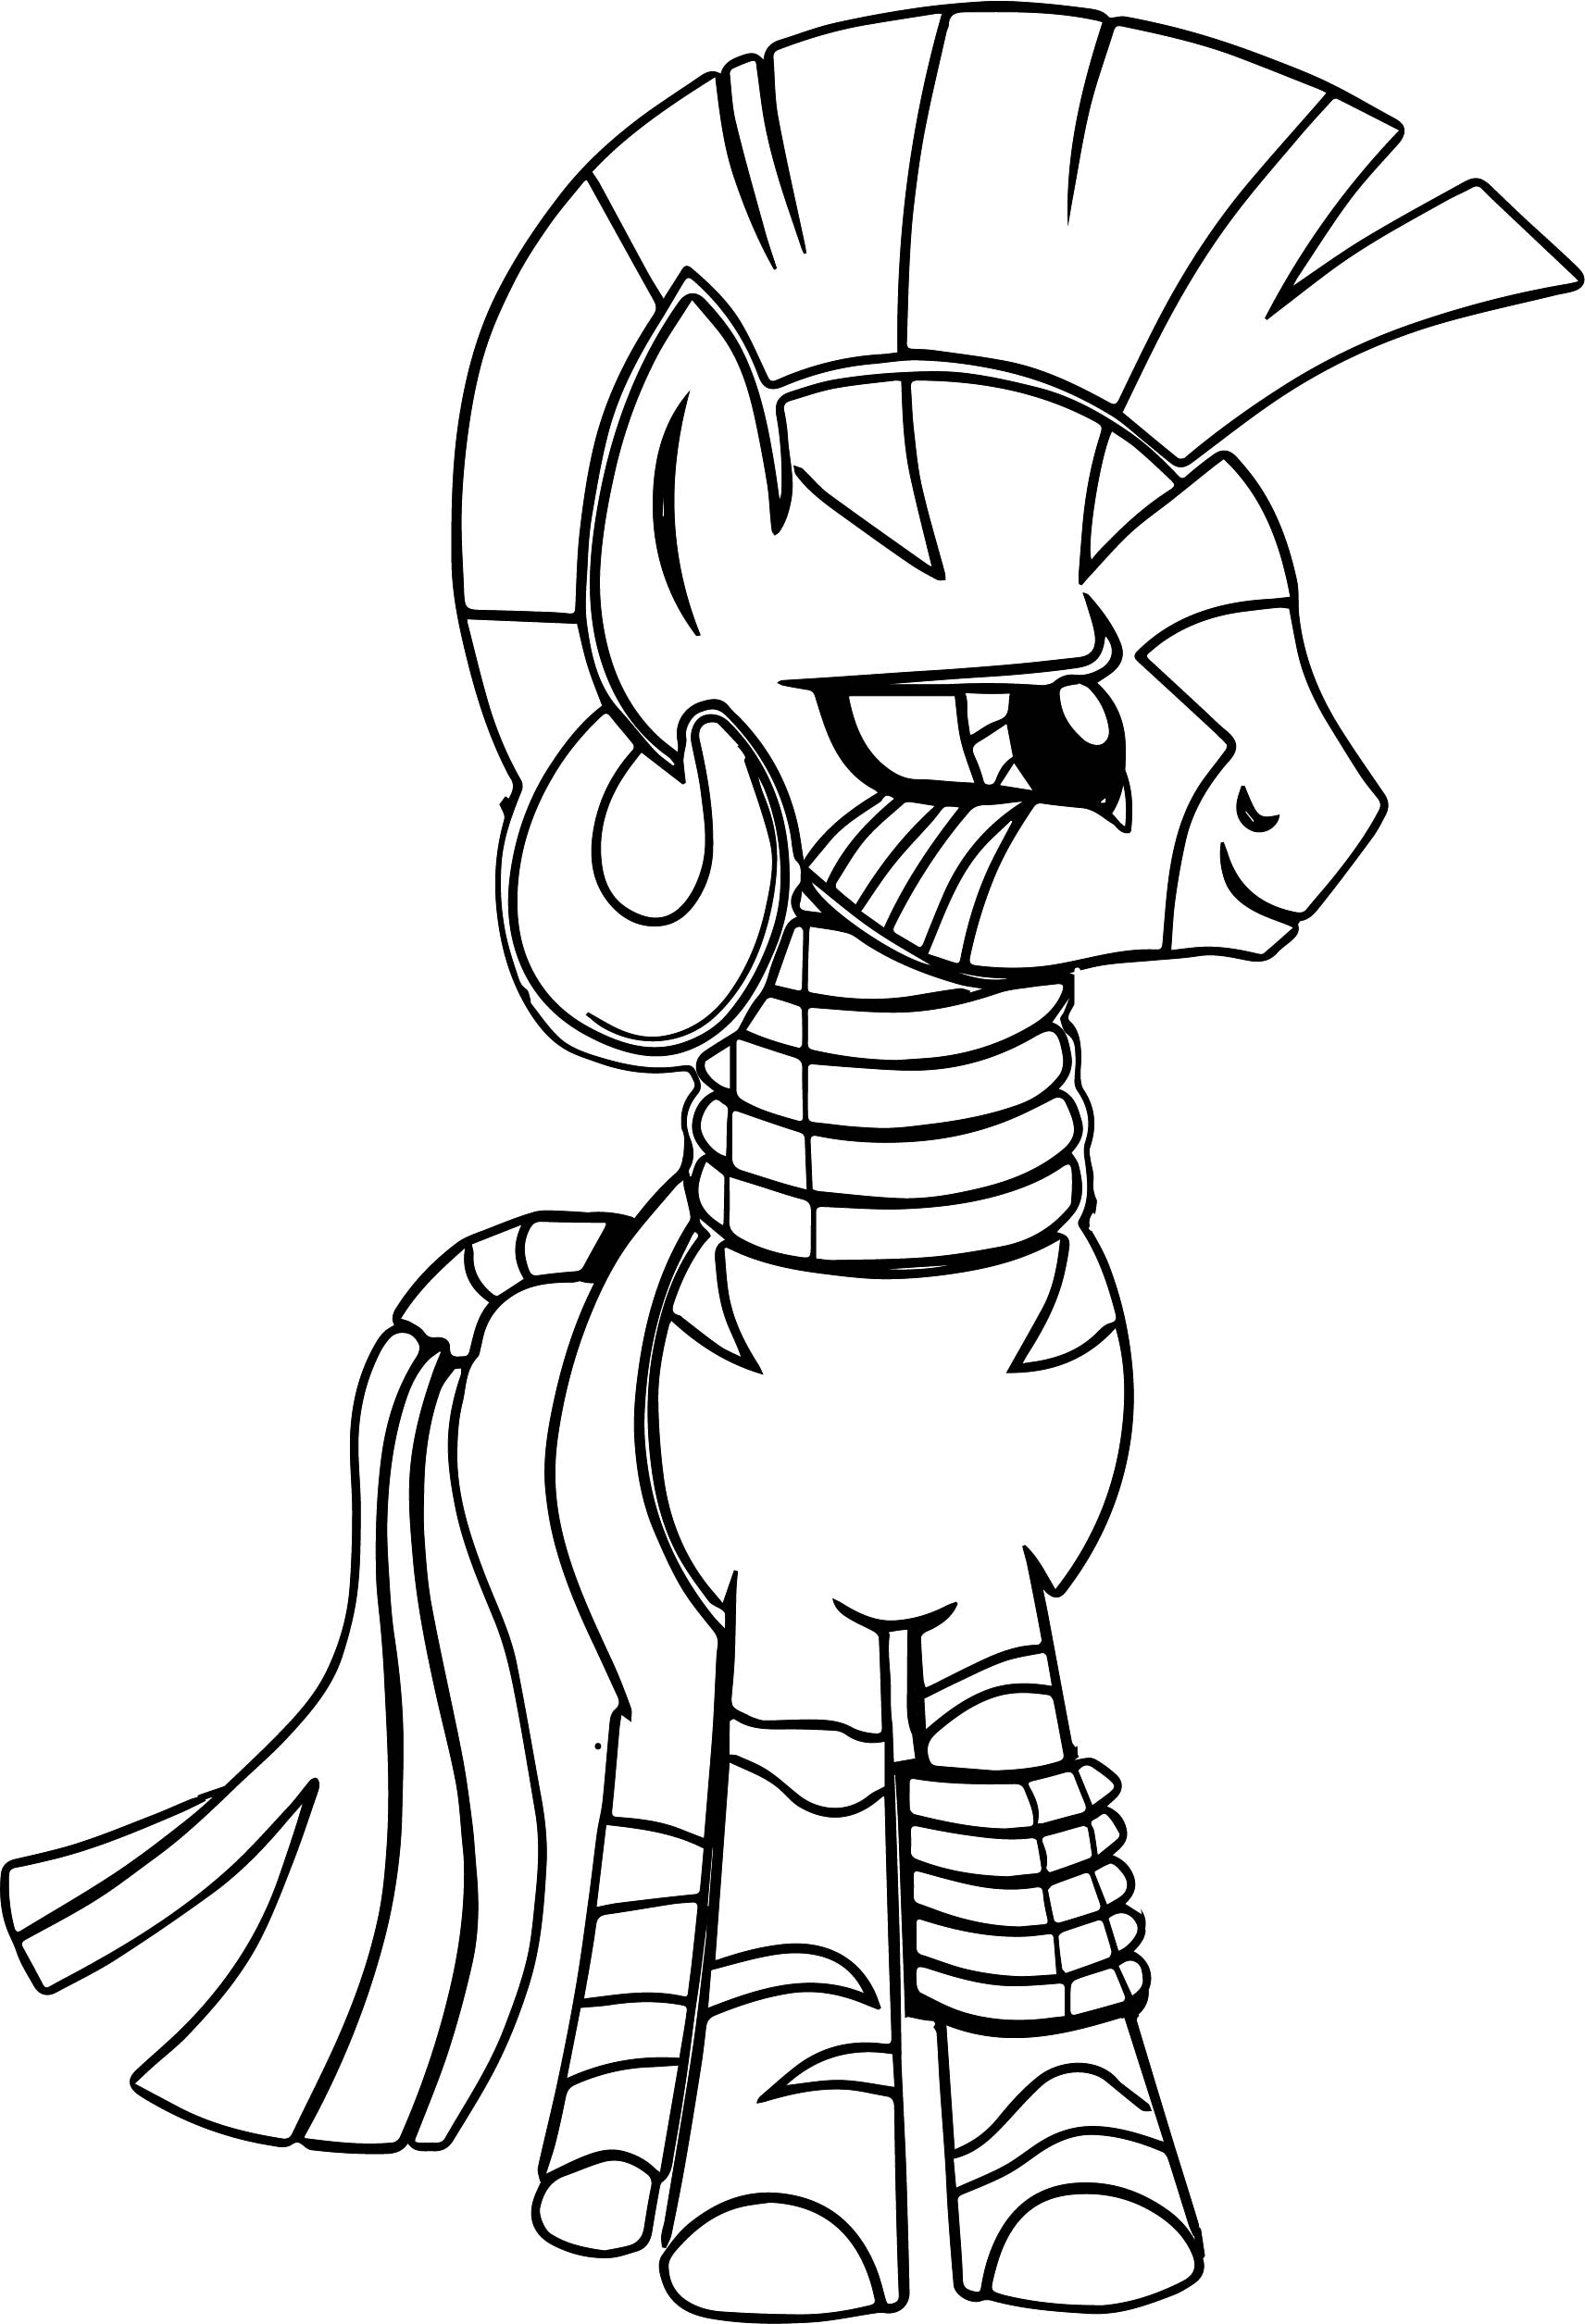 My First Of Zecora Coloring Page